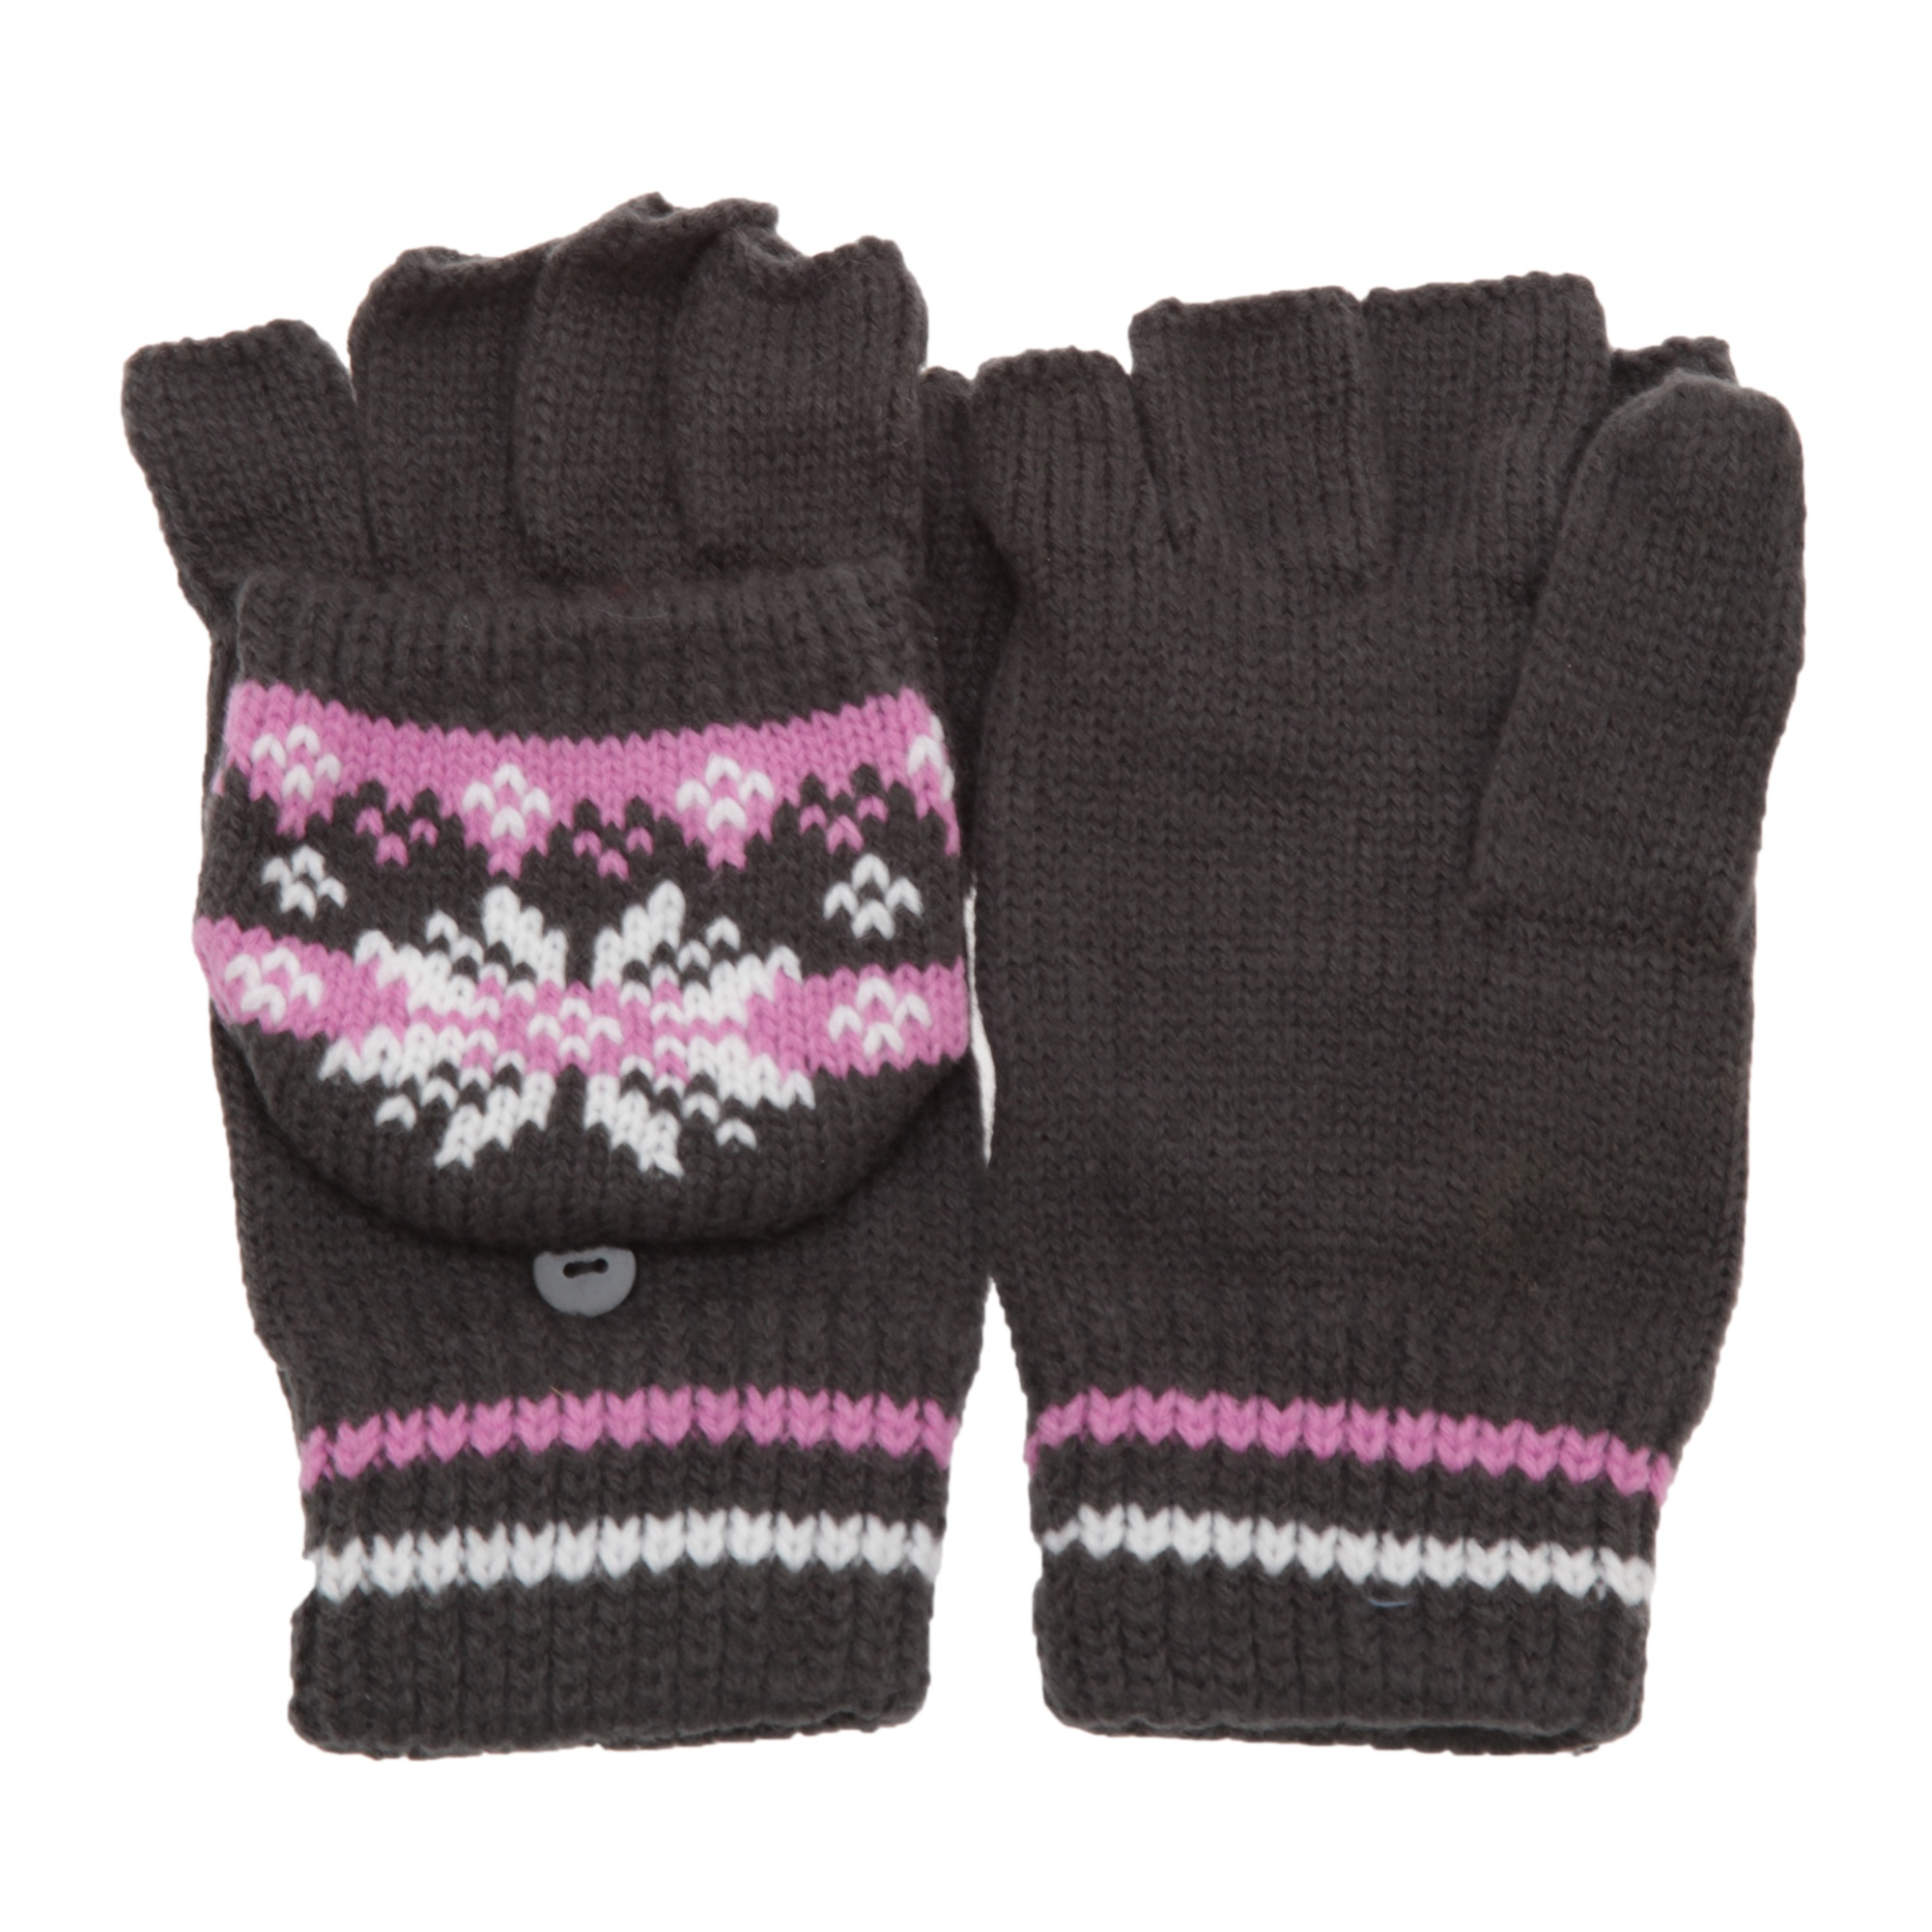 There's nothing like a warm pair of gloves or mittens on a chilly day. Start stitching a pair now for the coming colder season! These knit patterns are easy to follow and written for all skill levels. Try a simple stocking stitch pattern for beginners, or a more complicated cabled set, there's a project for everyone! | .